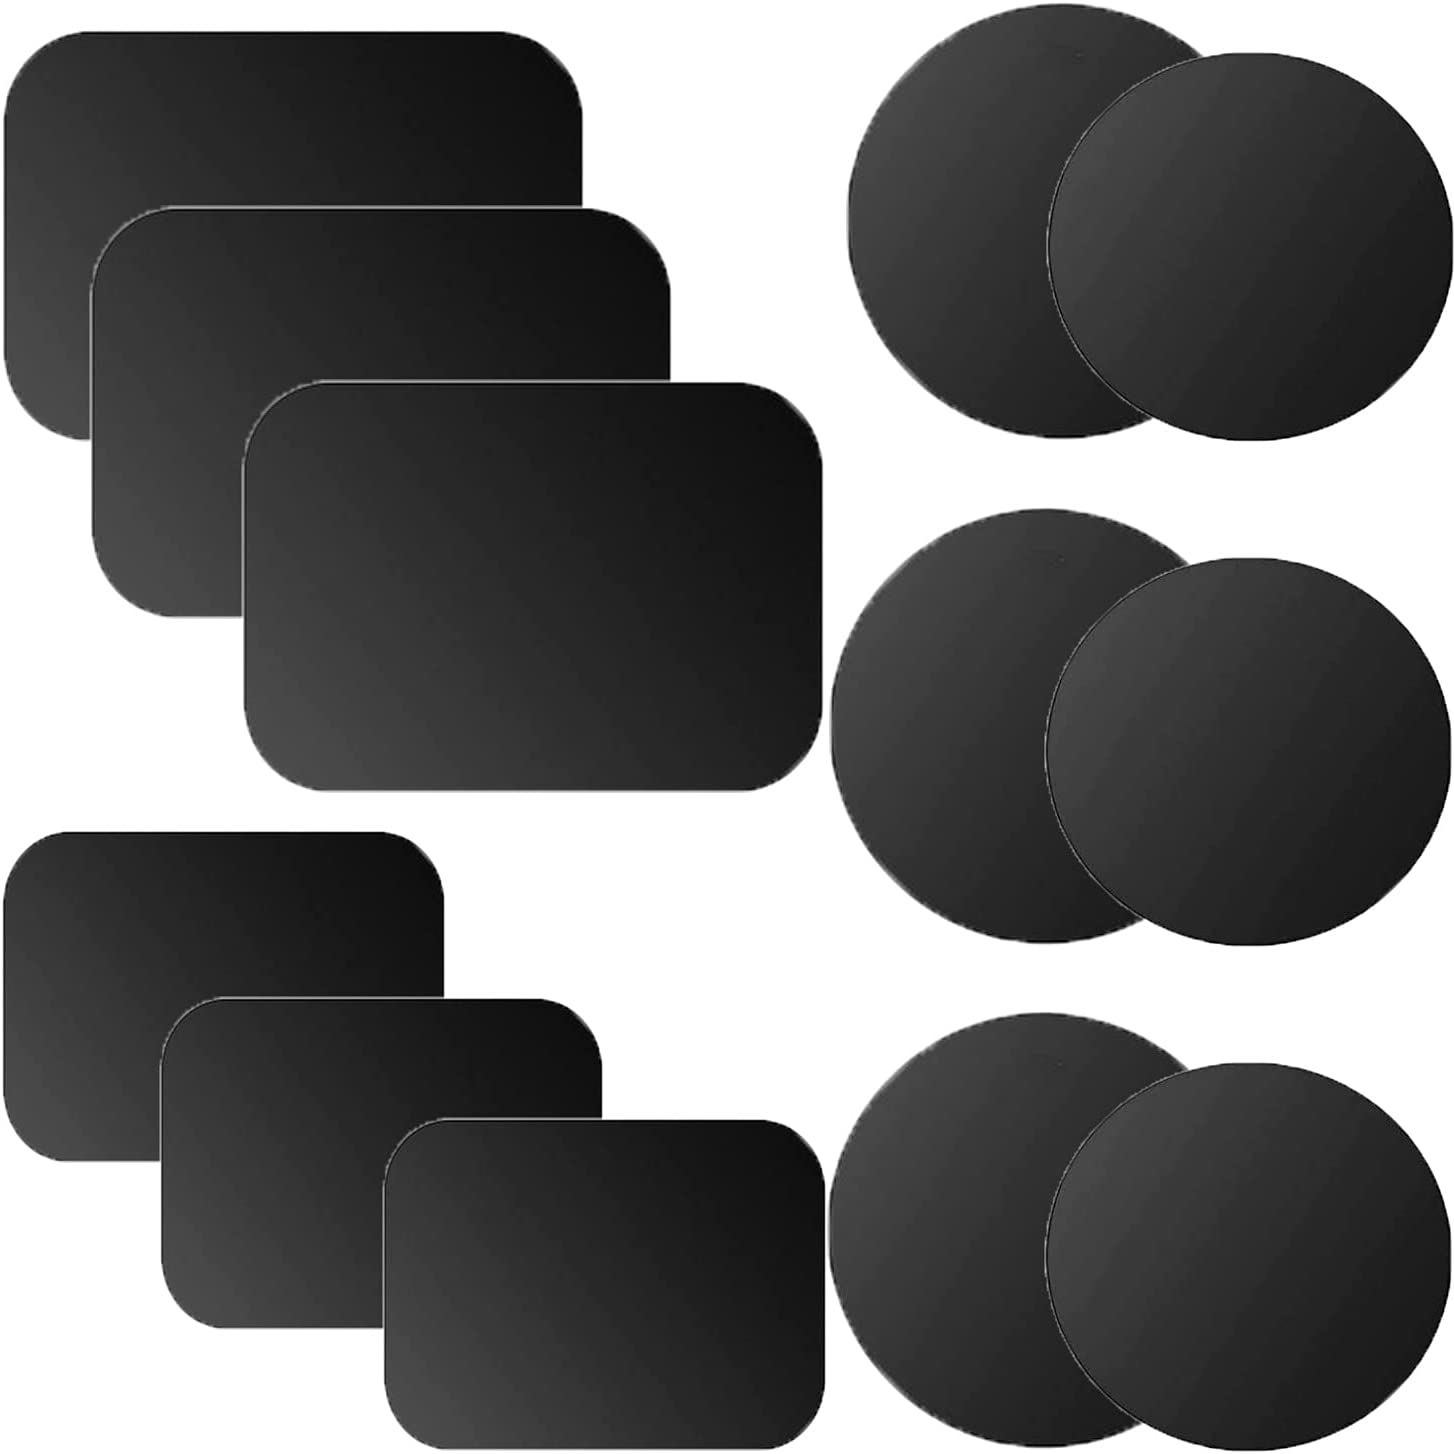 12 Pack Mount Metal Plate for Phone Magnetic with 4 Different Size Car Mount Holder Cradle with 3M Adhesive, Compatible with Magnetic Mounts (6 Rectangle and 6 Round), Black